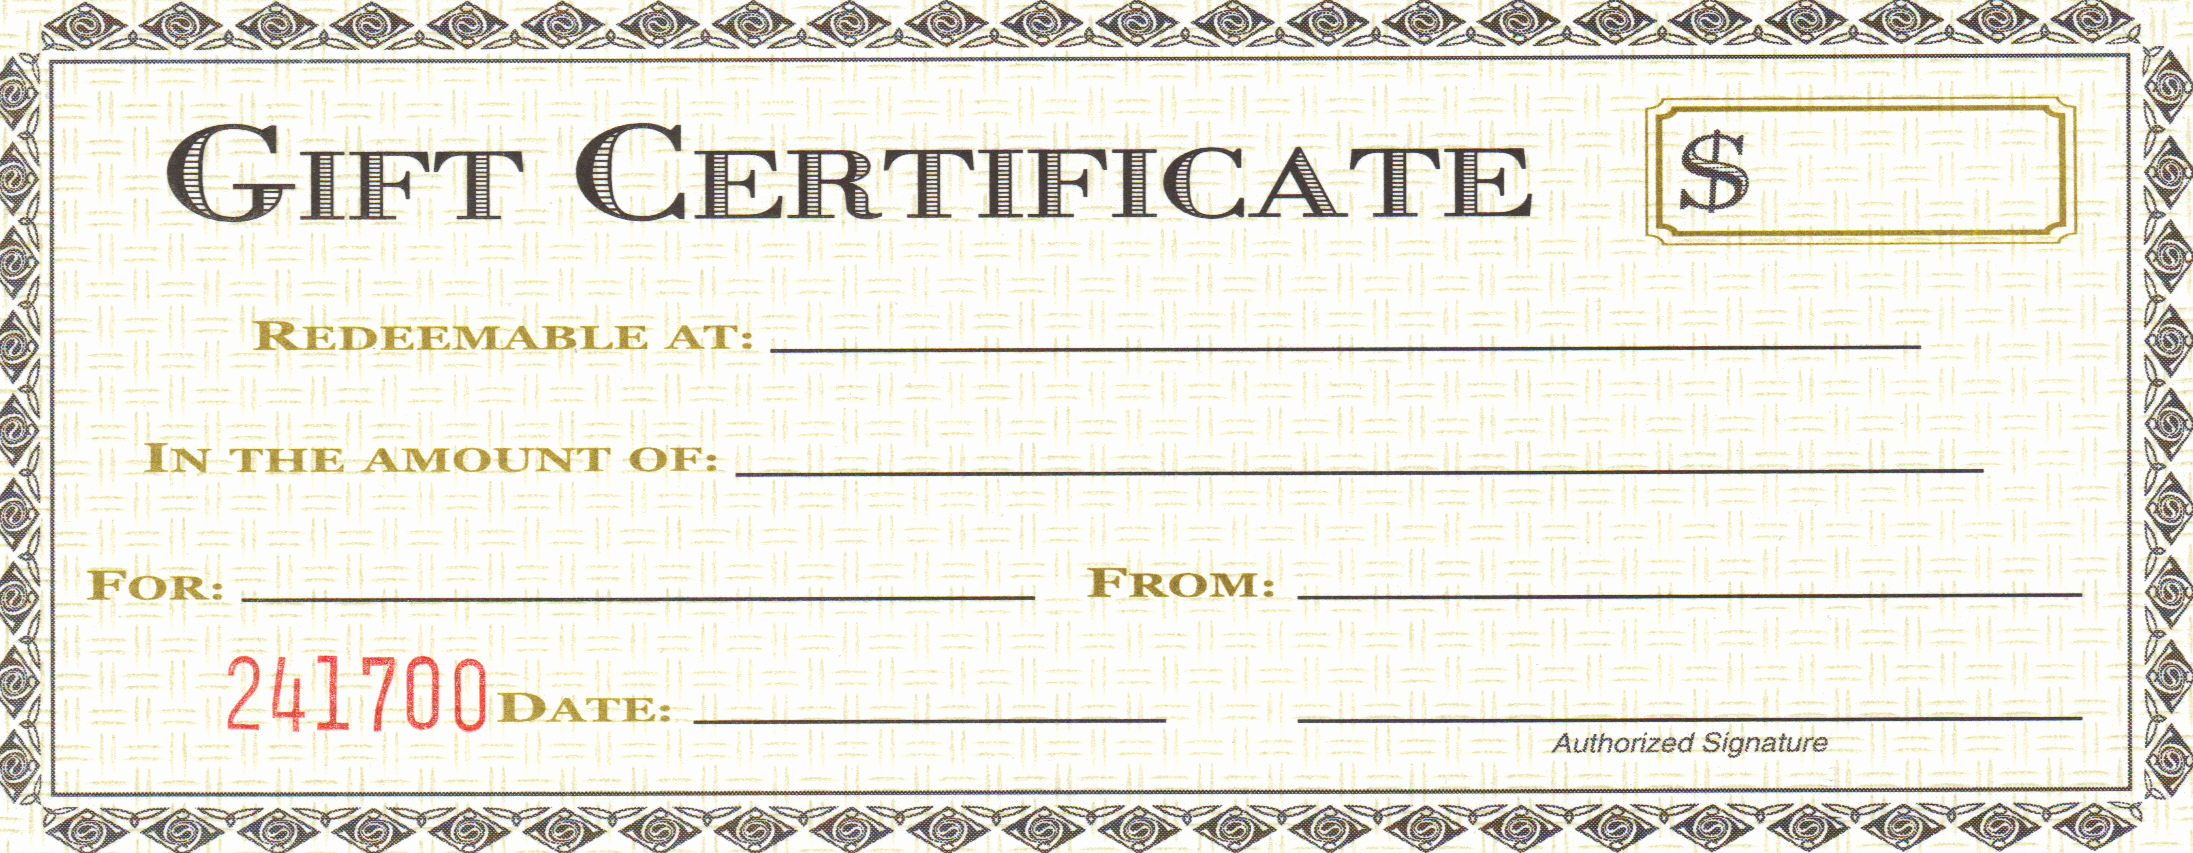 Free Gift Certificate Templates Awesome 18 Gift Certificate Templates Excel Pdf formats